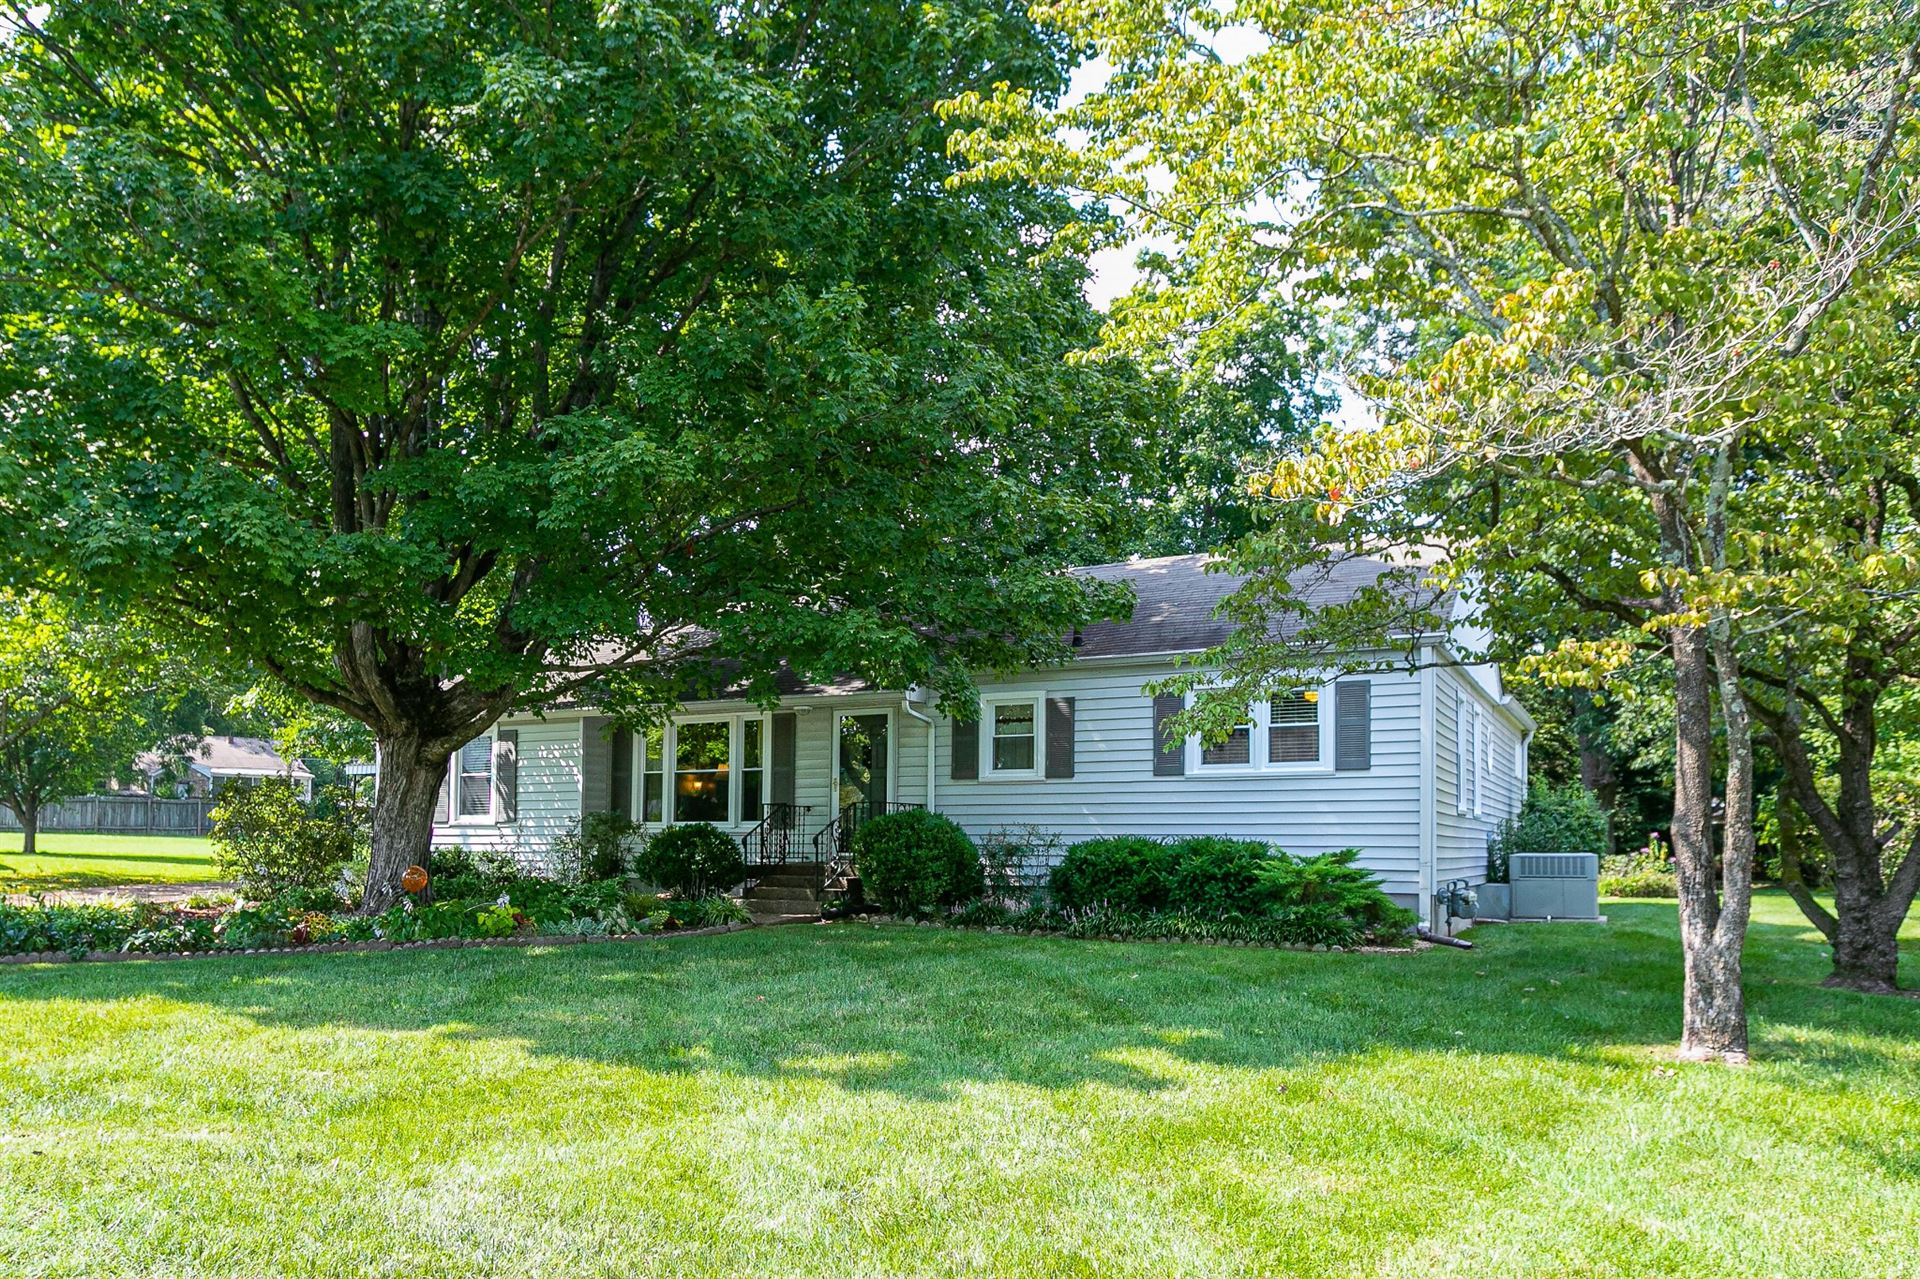 Photo of 311 Bel Aire Dr, Franklin, TN 37064 (MLS # 2286896)